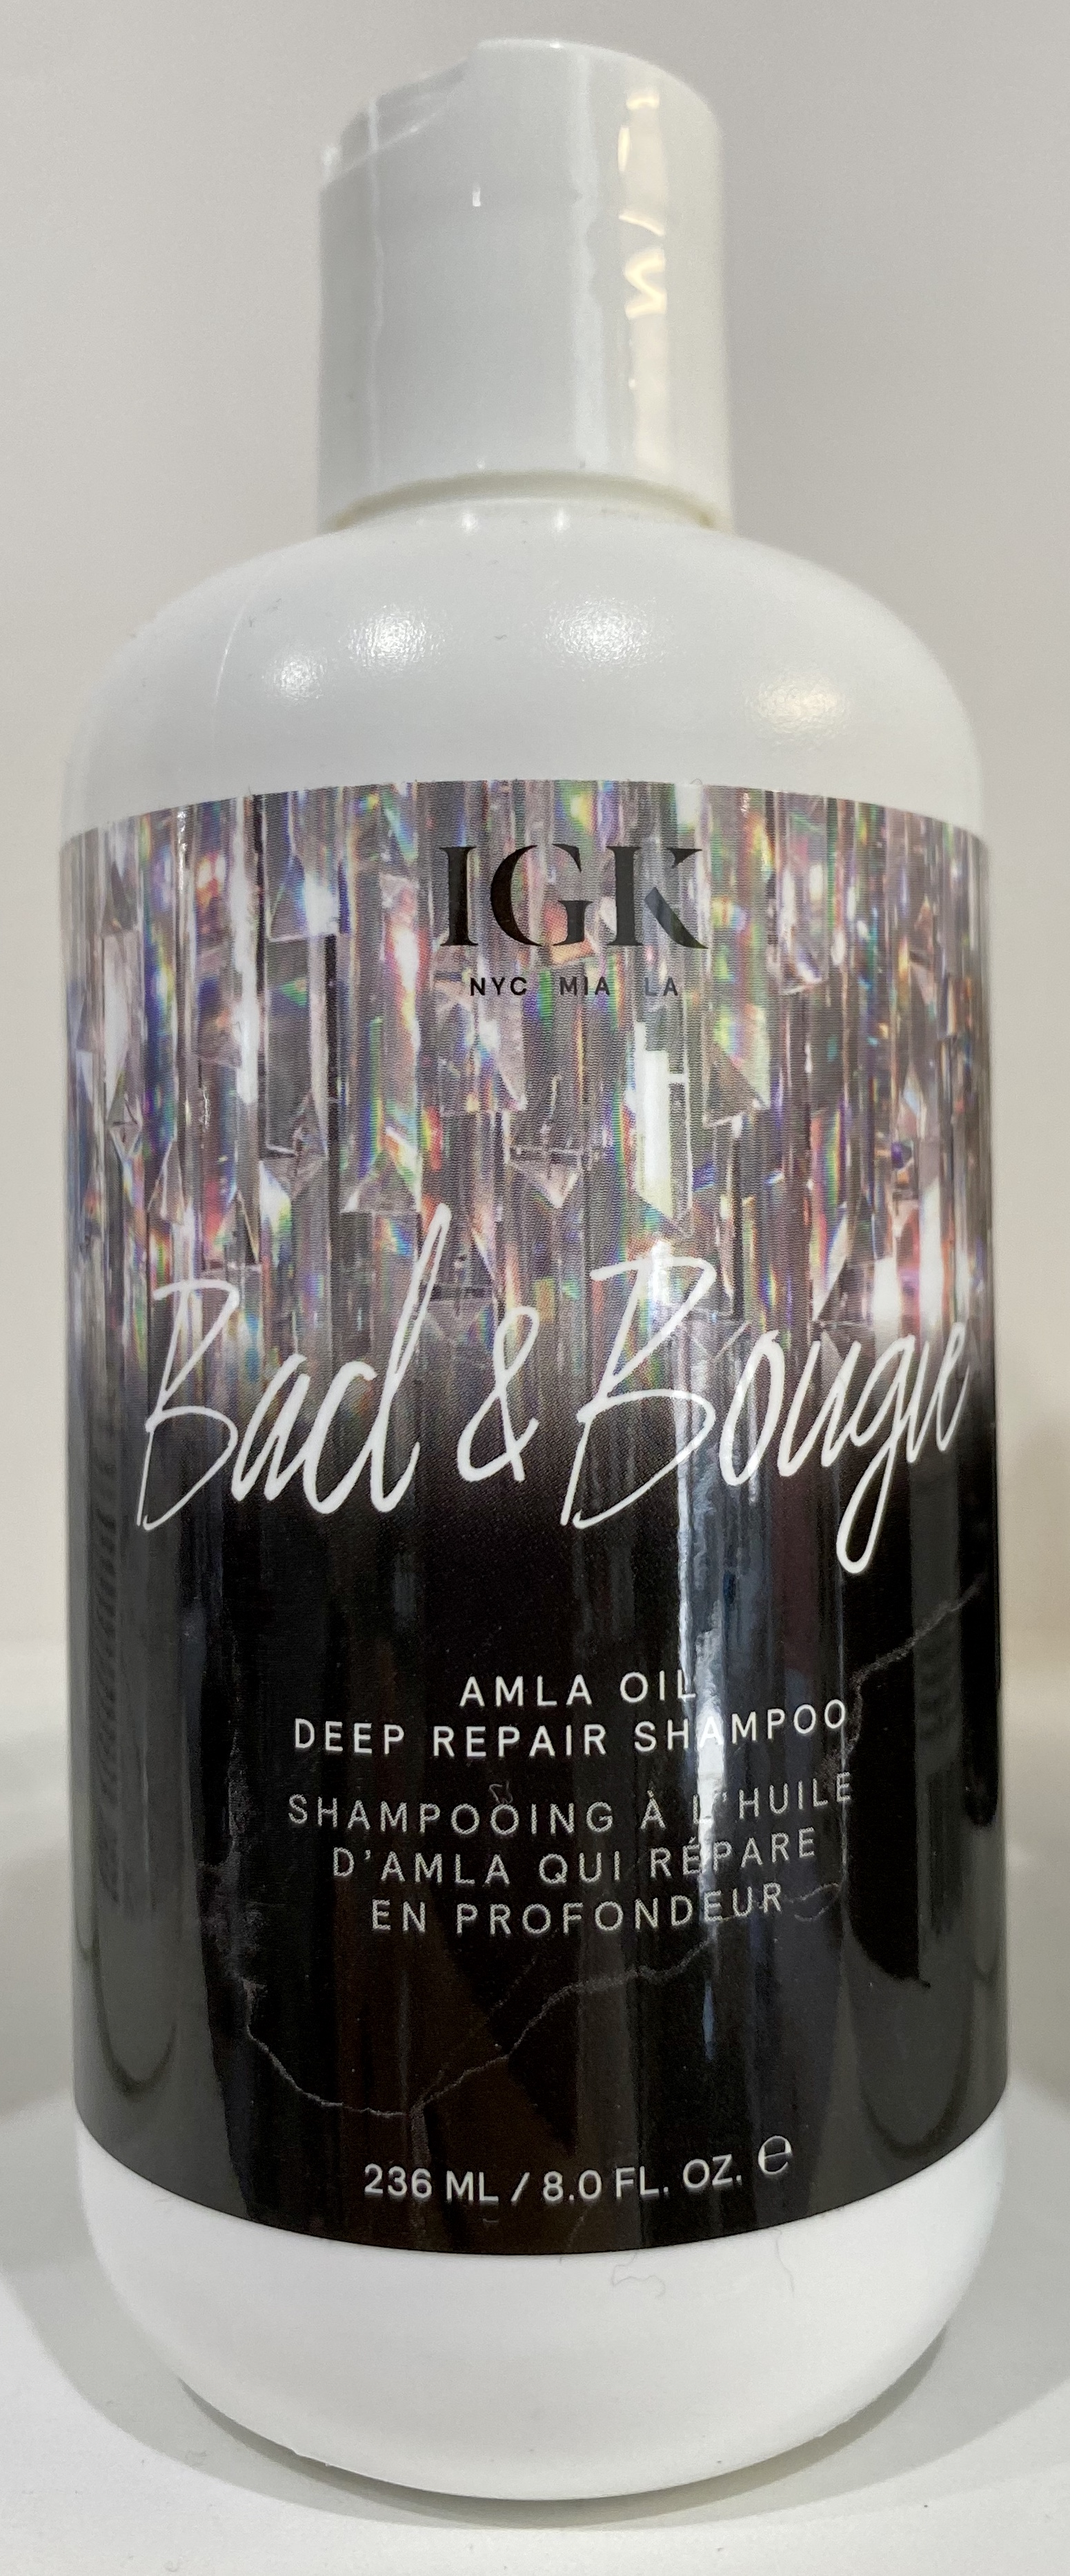 Bad & Bougie Shampoo